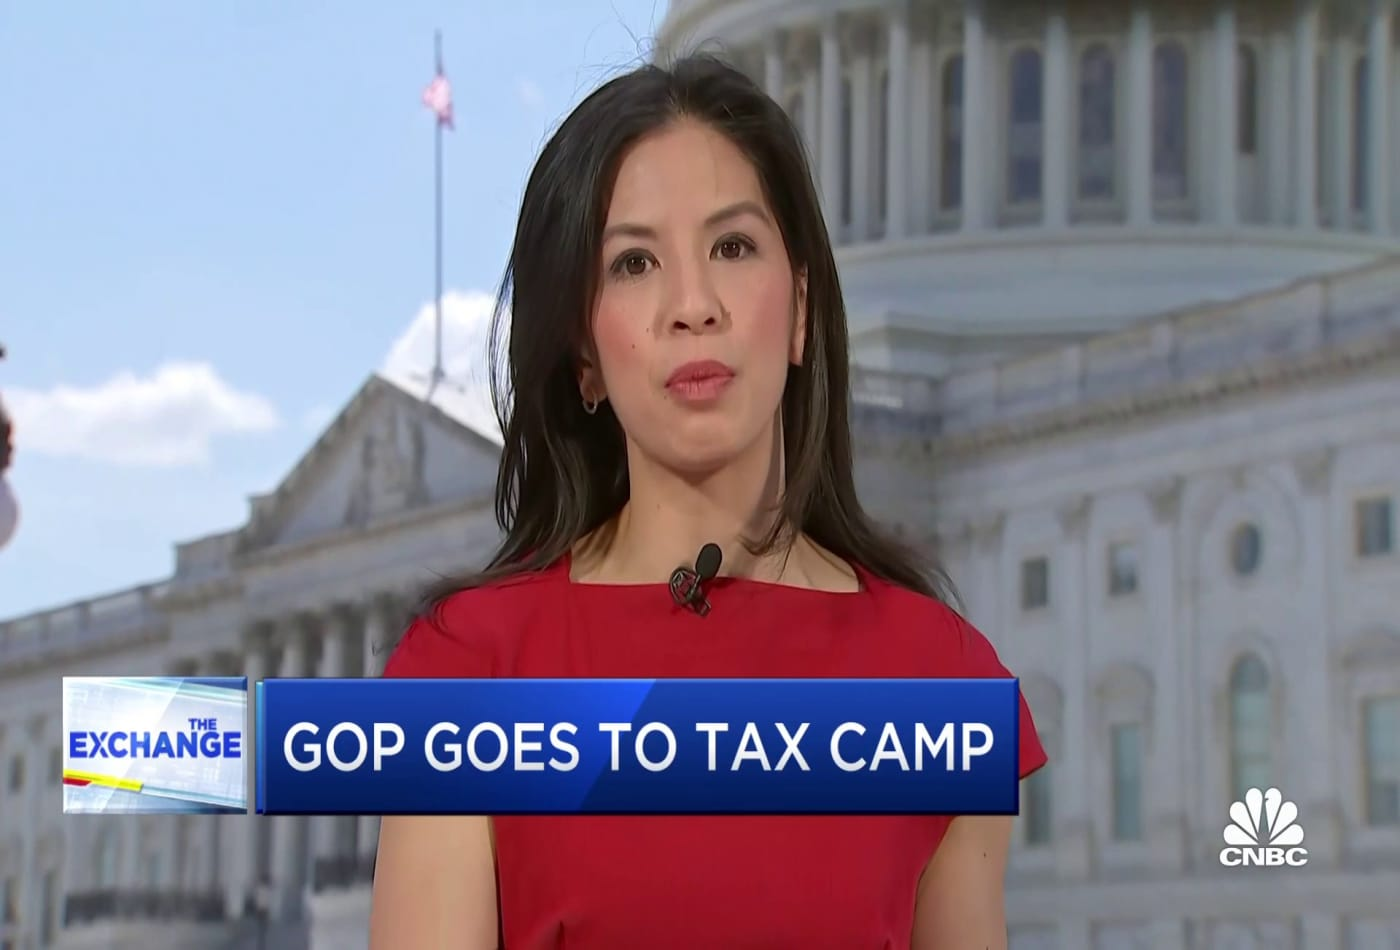 GOP tax camp to fight Biden's tax hikes on wealthy